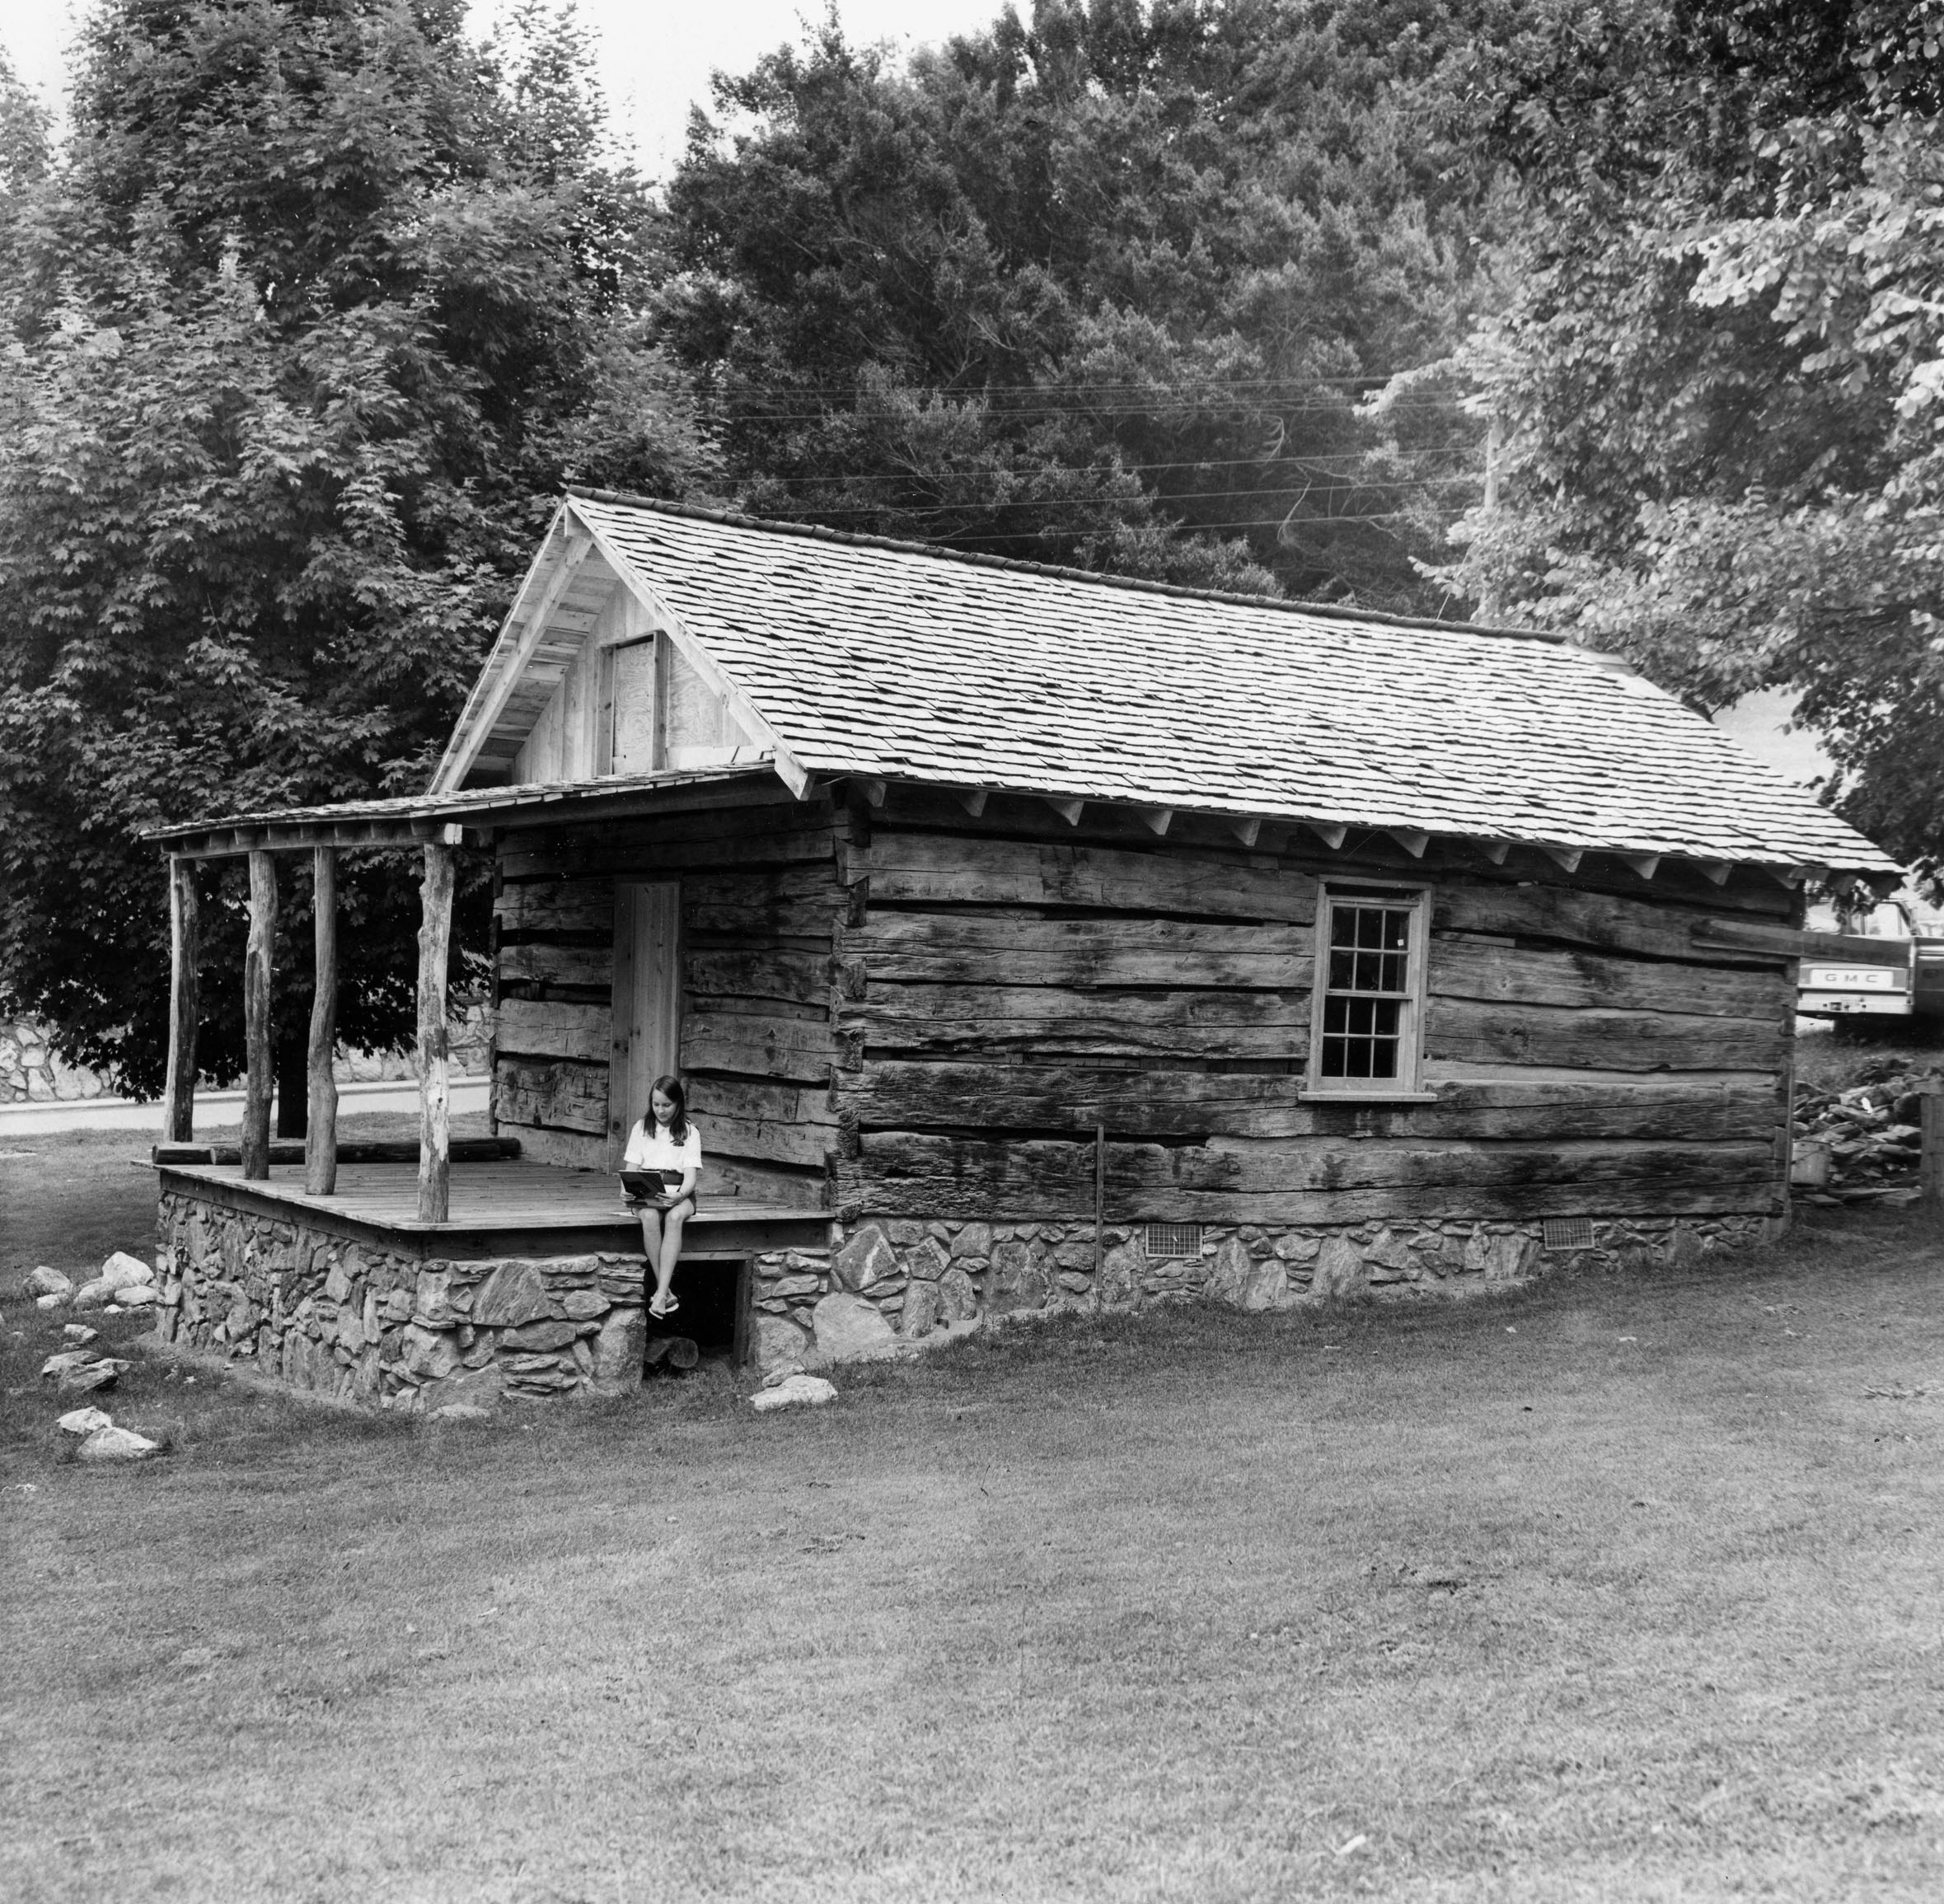 The Heritage Cabin shortly after reconstruction of the structure was completed.